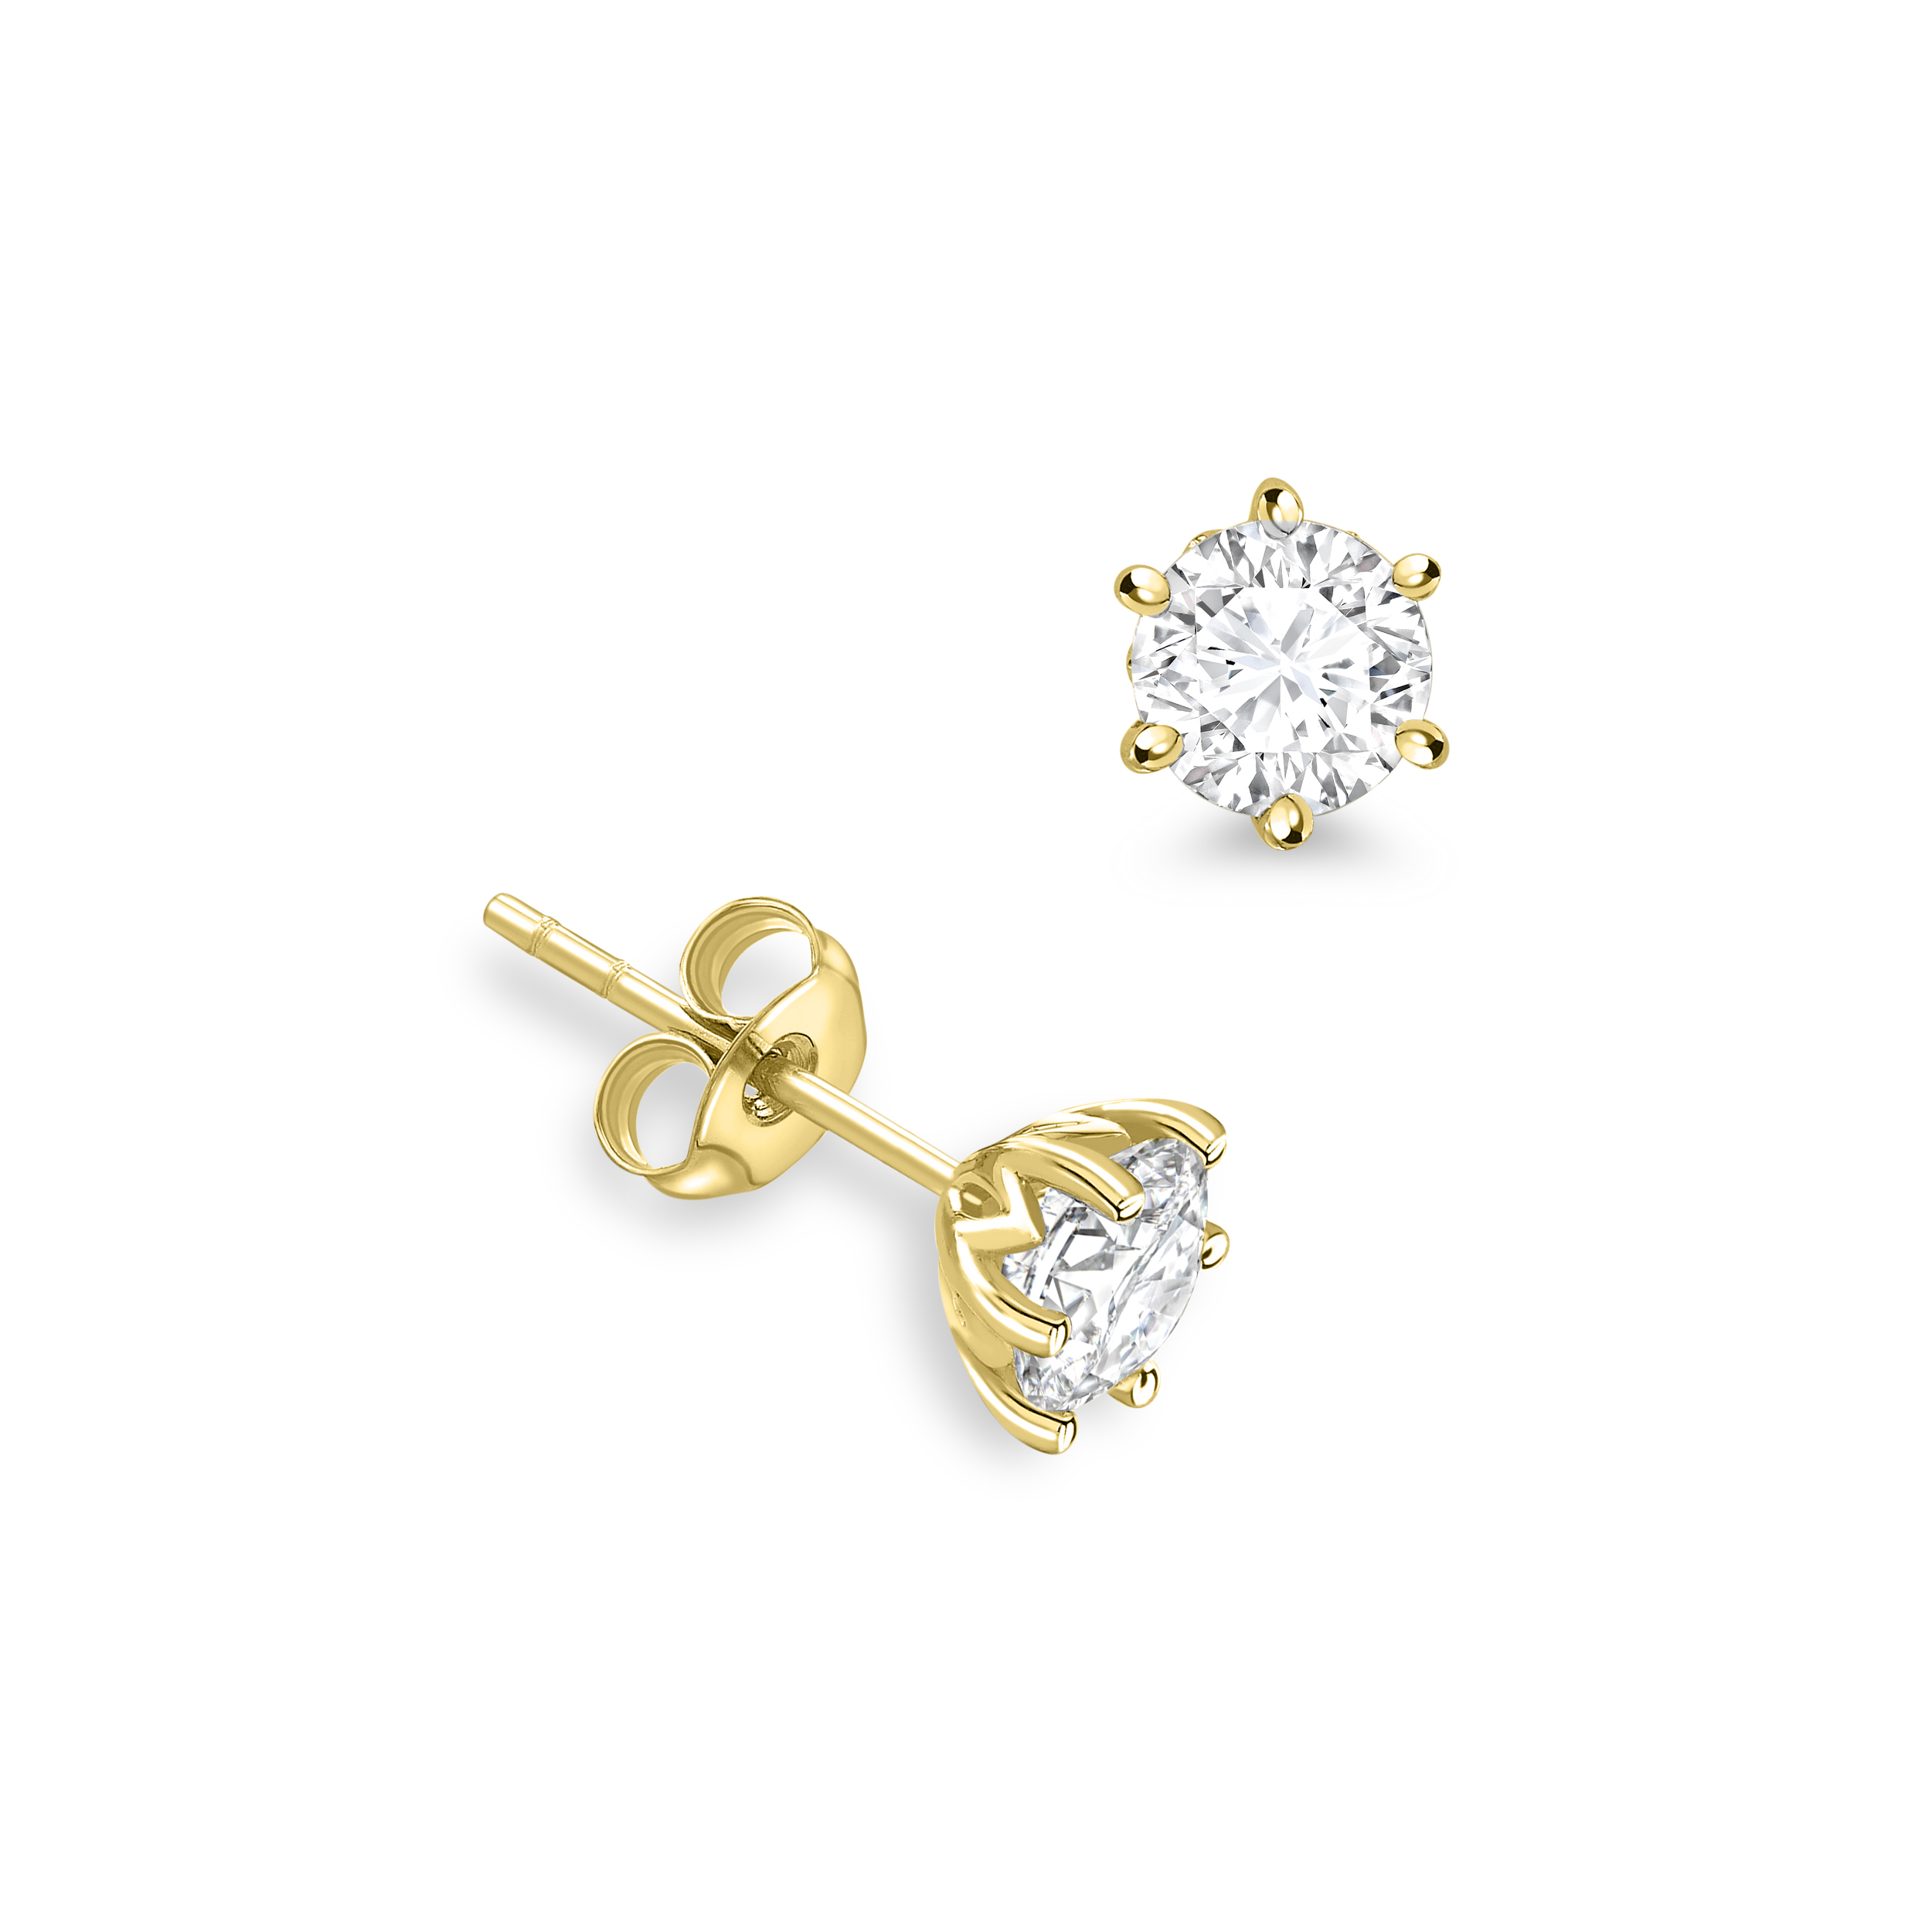 6 Claws Round Shape Crown Stud Diamond Earrings Available in White, Yellow, Rose Gold and Platinum